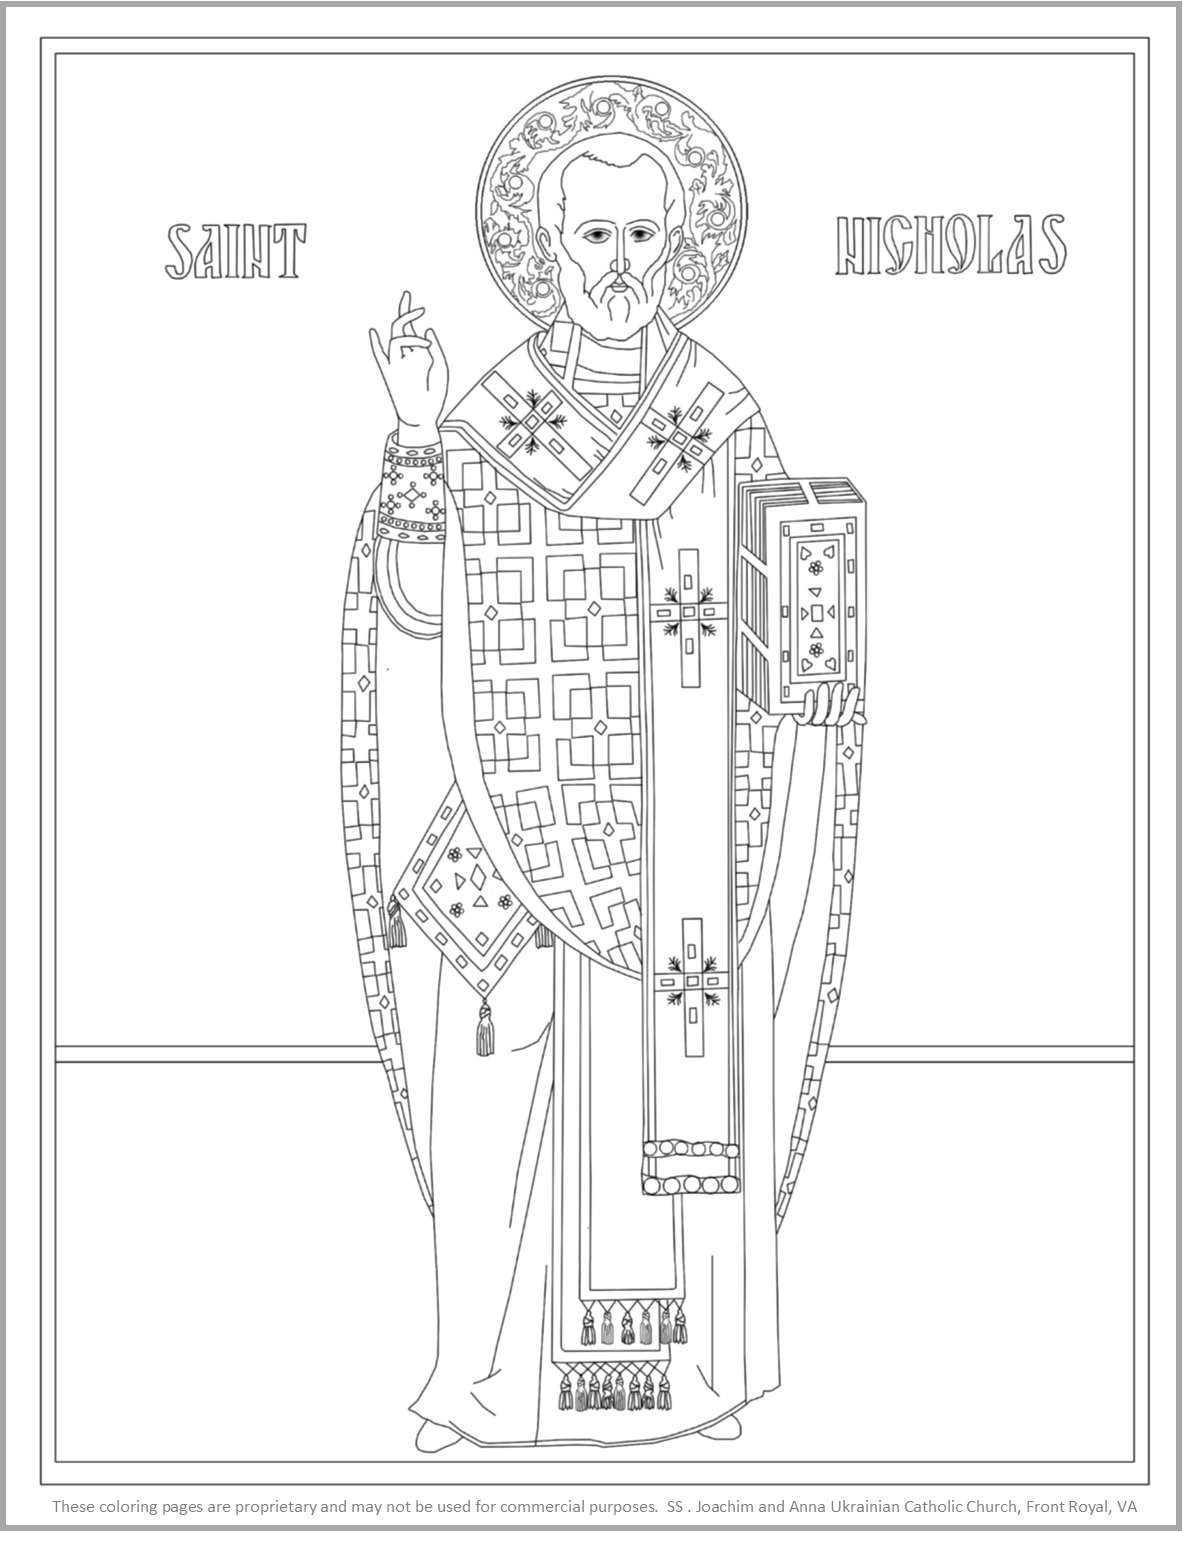 Icon Of St Nicholas Coloring Page Coloring Pages For Kids Castle Coloring Page Coloring Pages